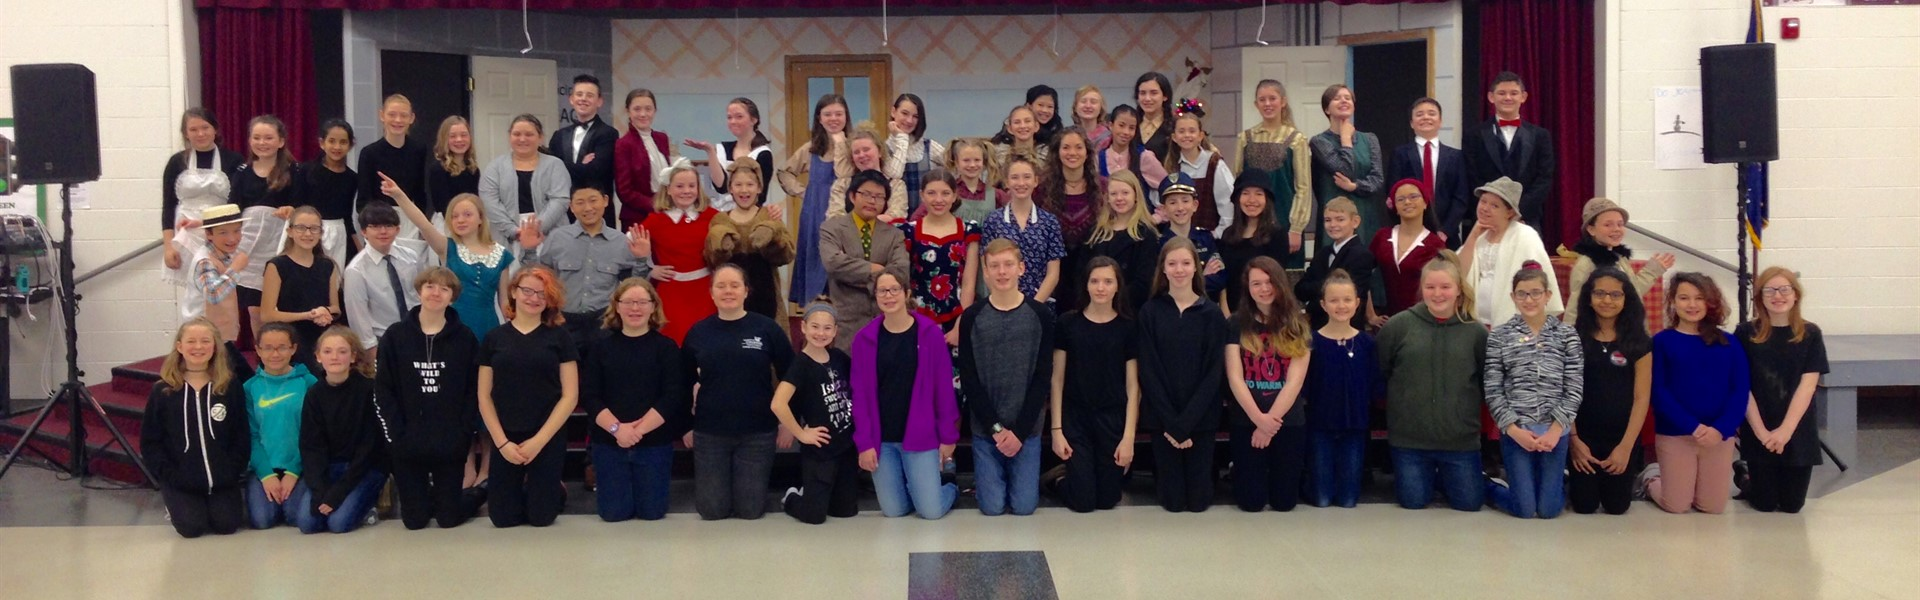 Annie Jr. Cast and Crew